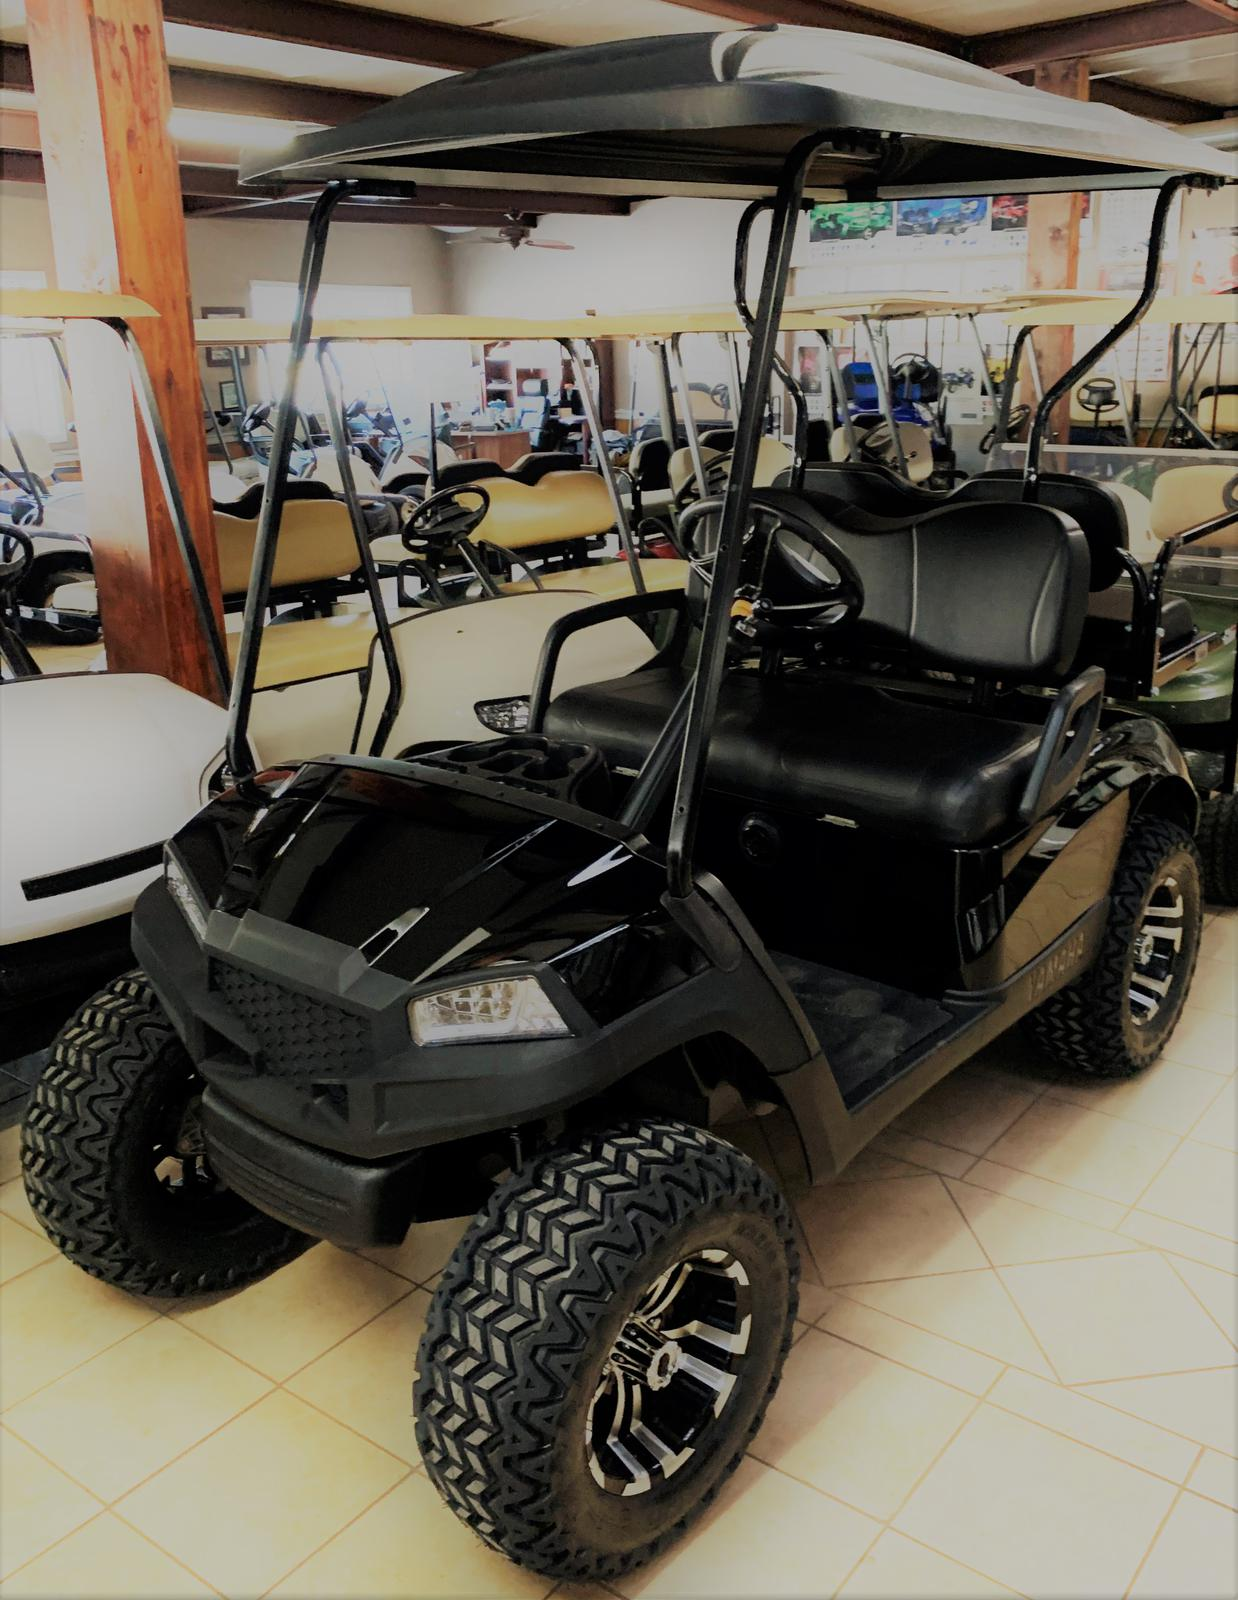 Yamaha Yamaha w/ HAVOC Body - ON SALE NOW! for sale in